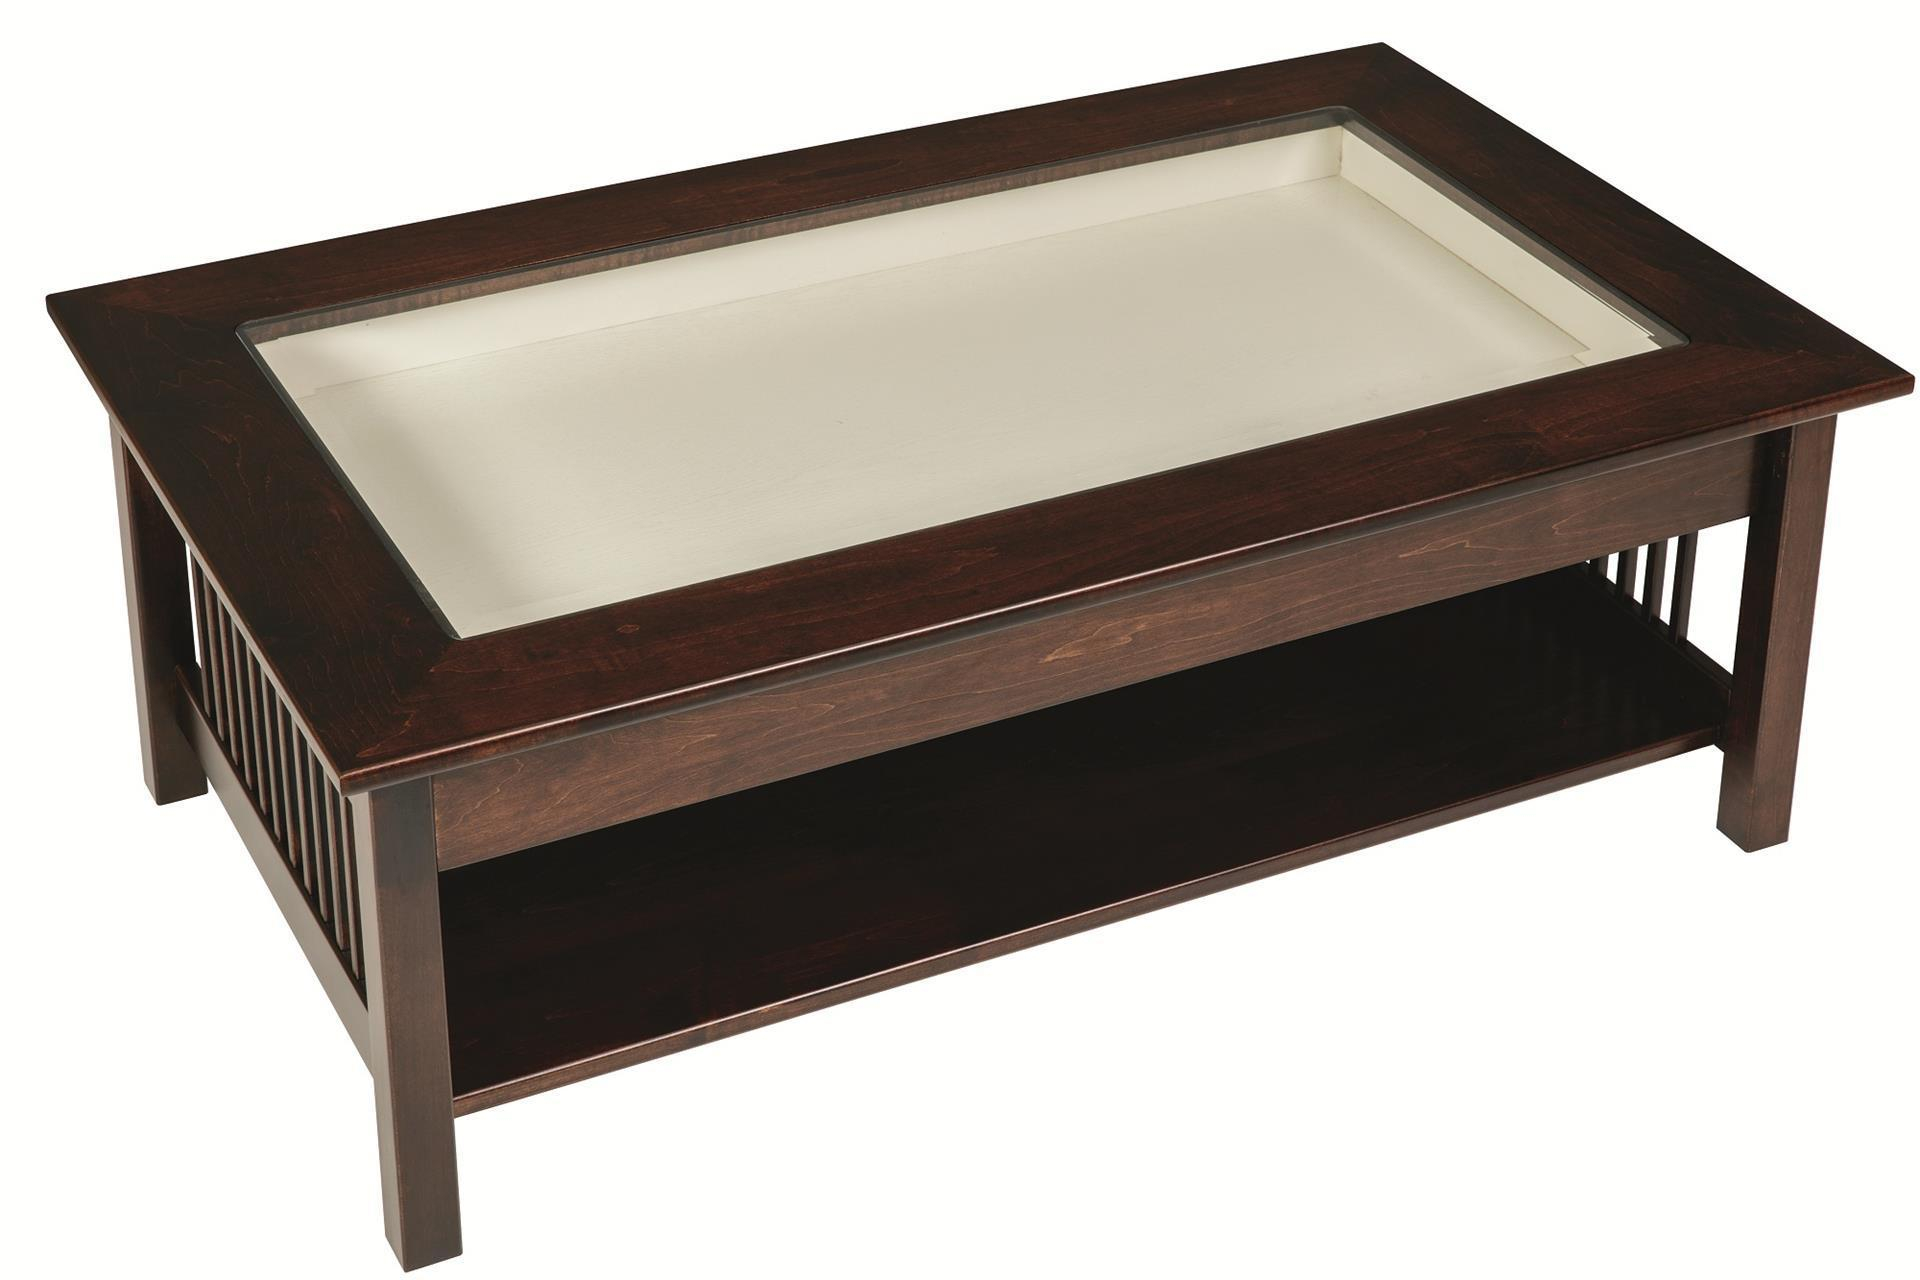 Mission Large Coffee Table With Glass Top Display From Dutchcrafters inside size 1920 X 1280